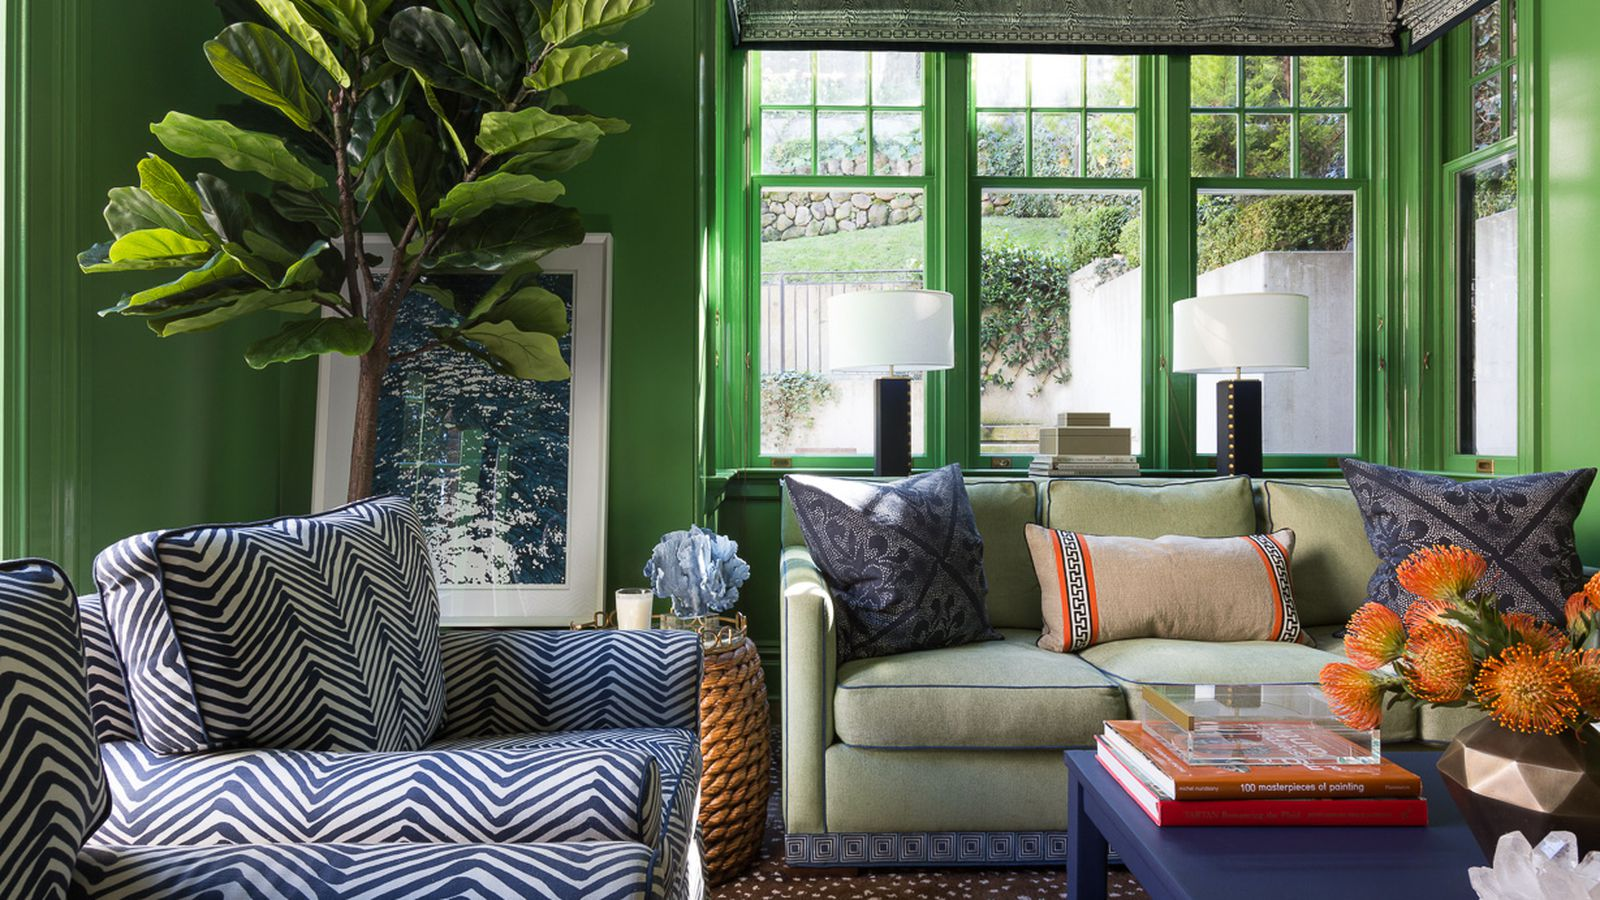 15 bold interior paint hues for your home - Curbed